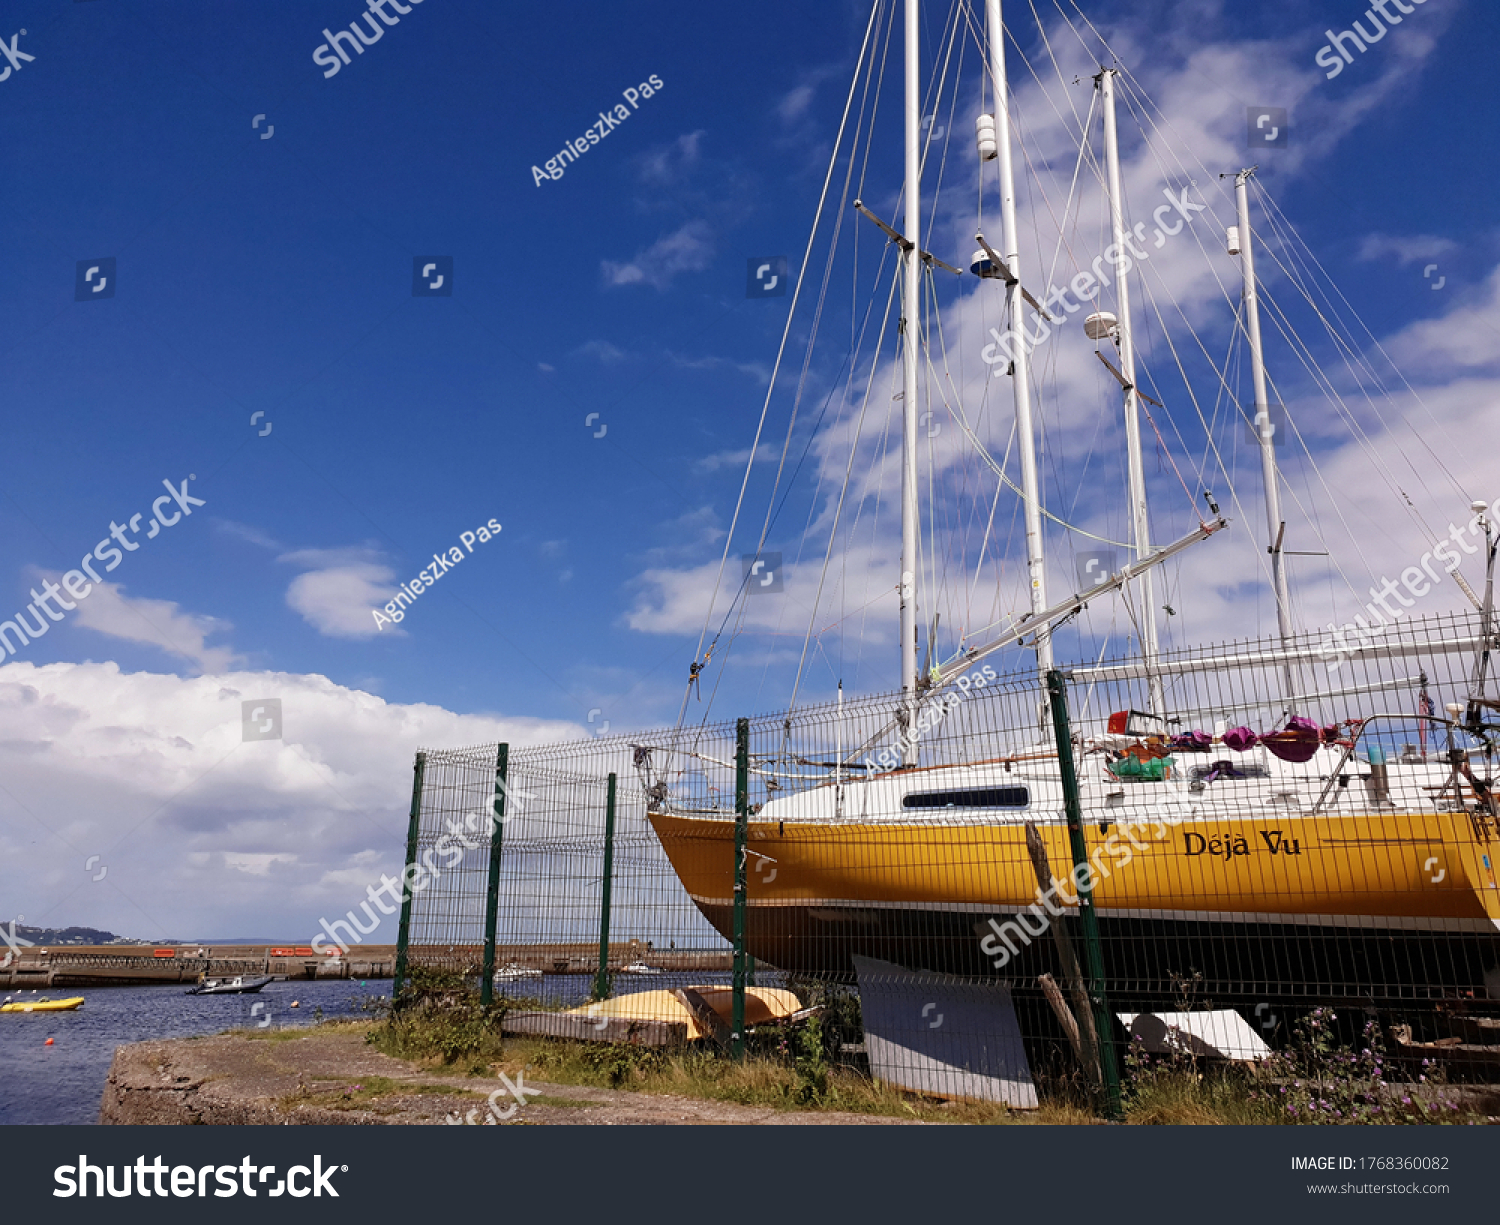 BRAY, CO. WICKLOW, IRELAND - JUNE 21, 2020: Sail boats on land in Bray port on sunny day. Colorful boats with white masts against blue sky.